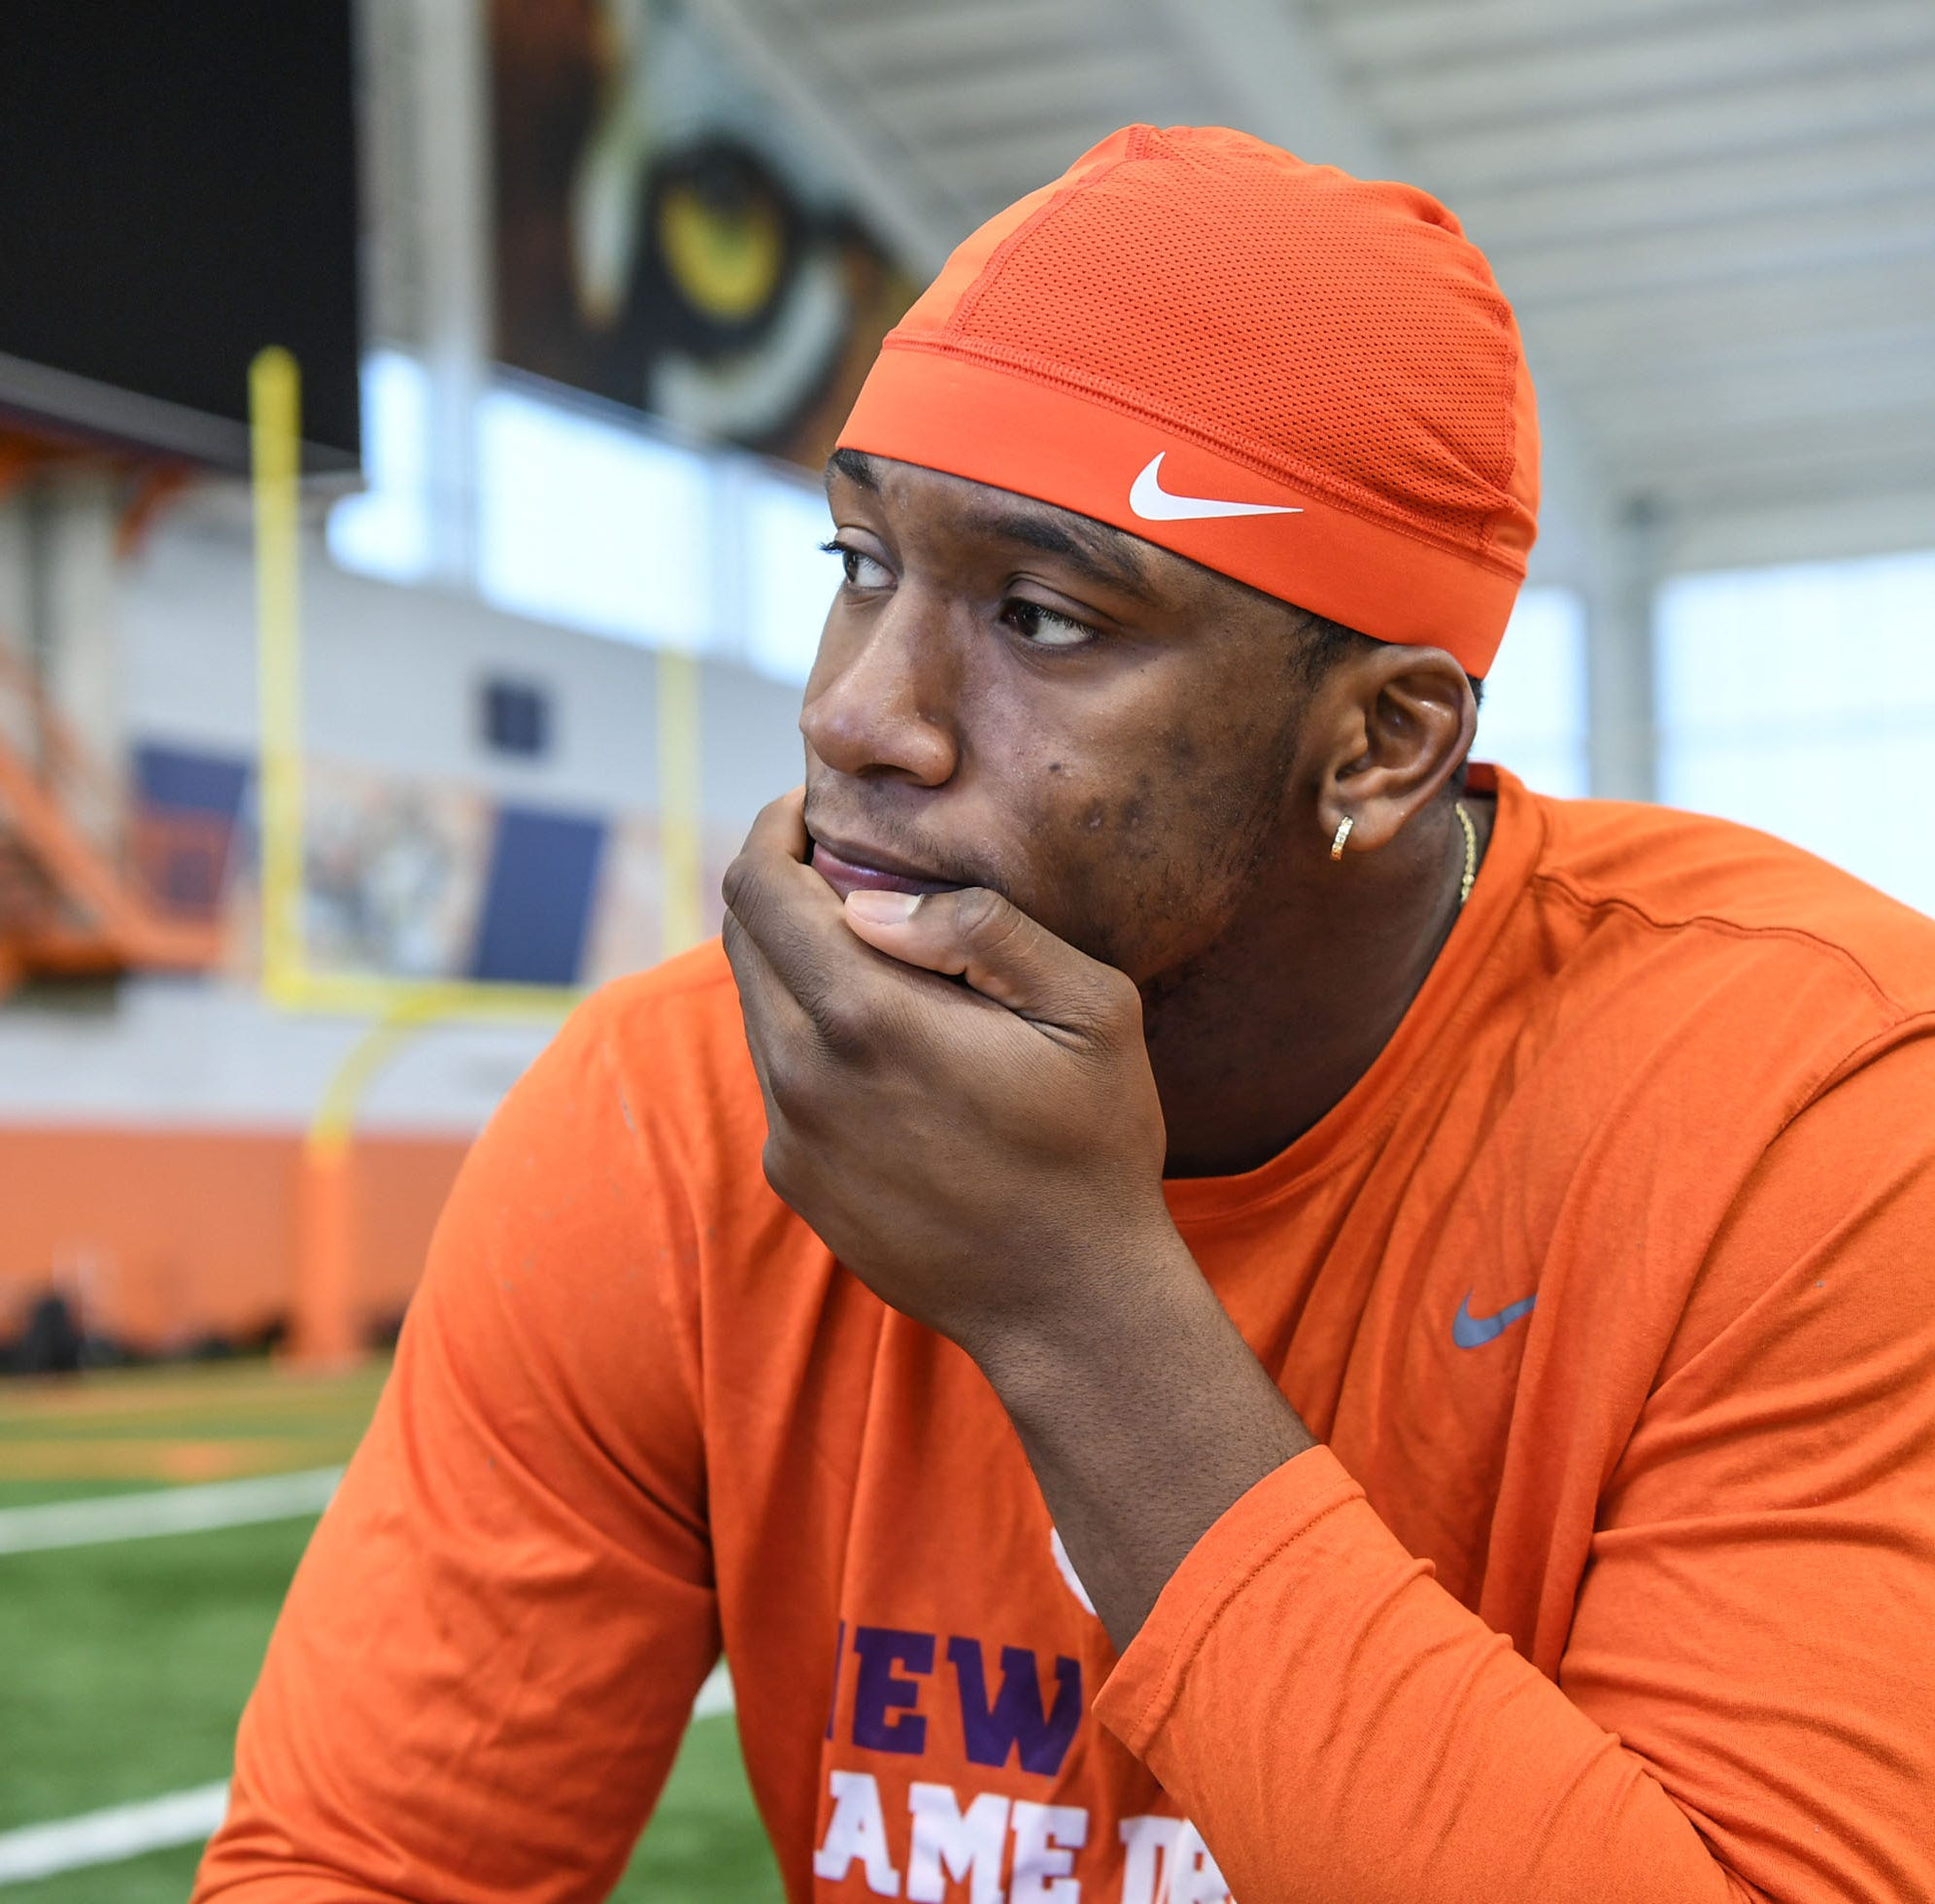 No matter how you say it, Clemson football star Clelin Ferrell has look of top NFL draft pick